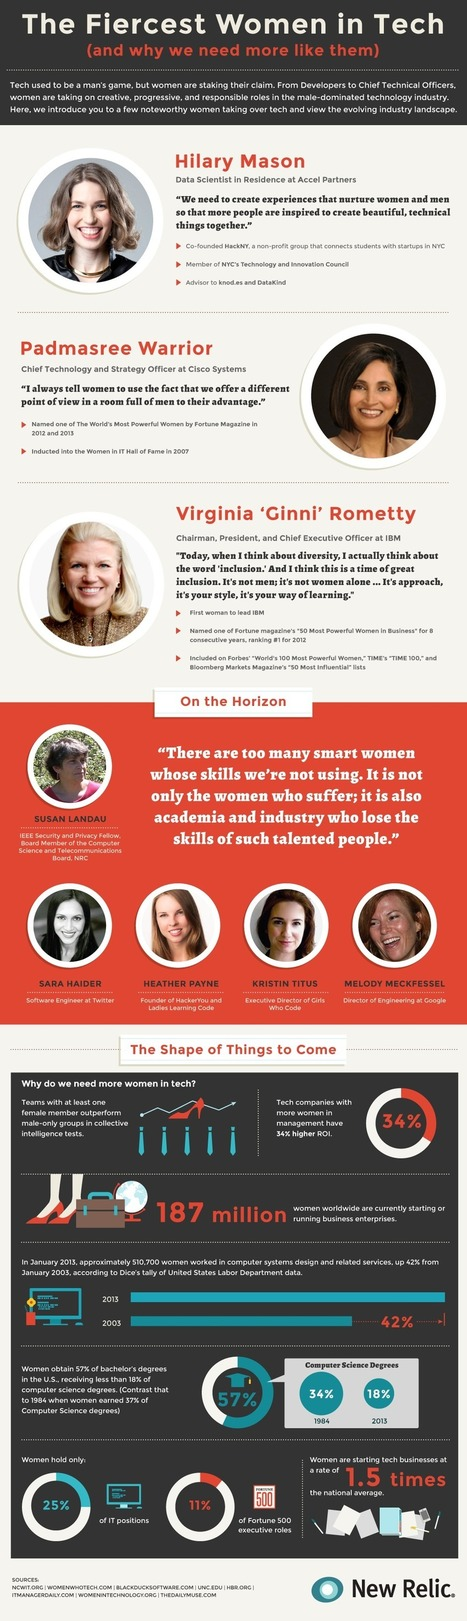 Meet The 3 Fiercest Women in Tech (and Why We Need More Like Them) Infographic | Soup for thought | Scoop.it